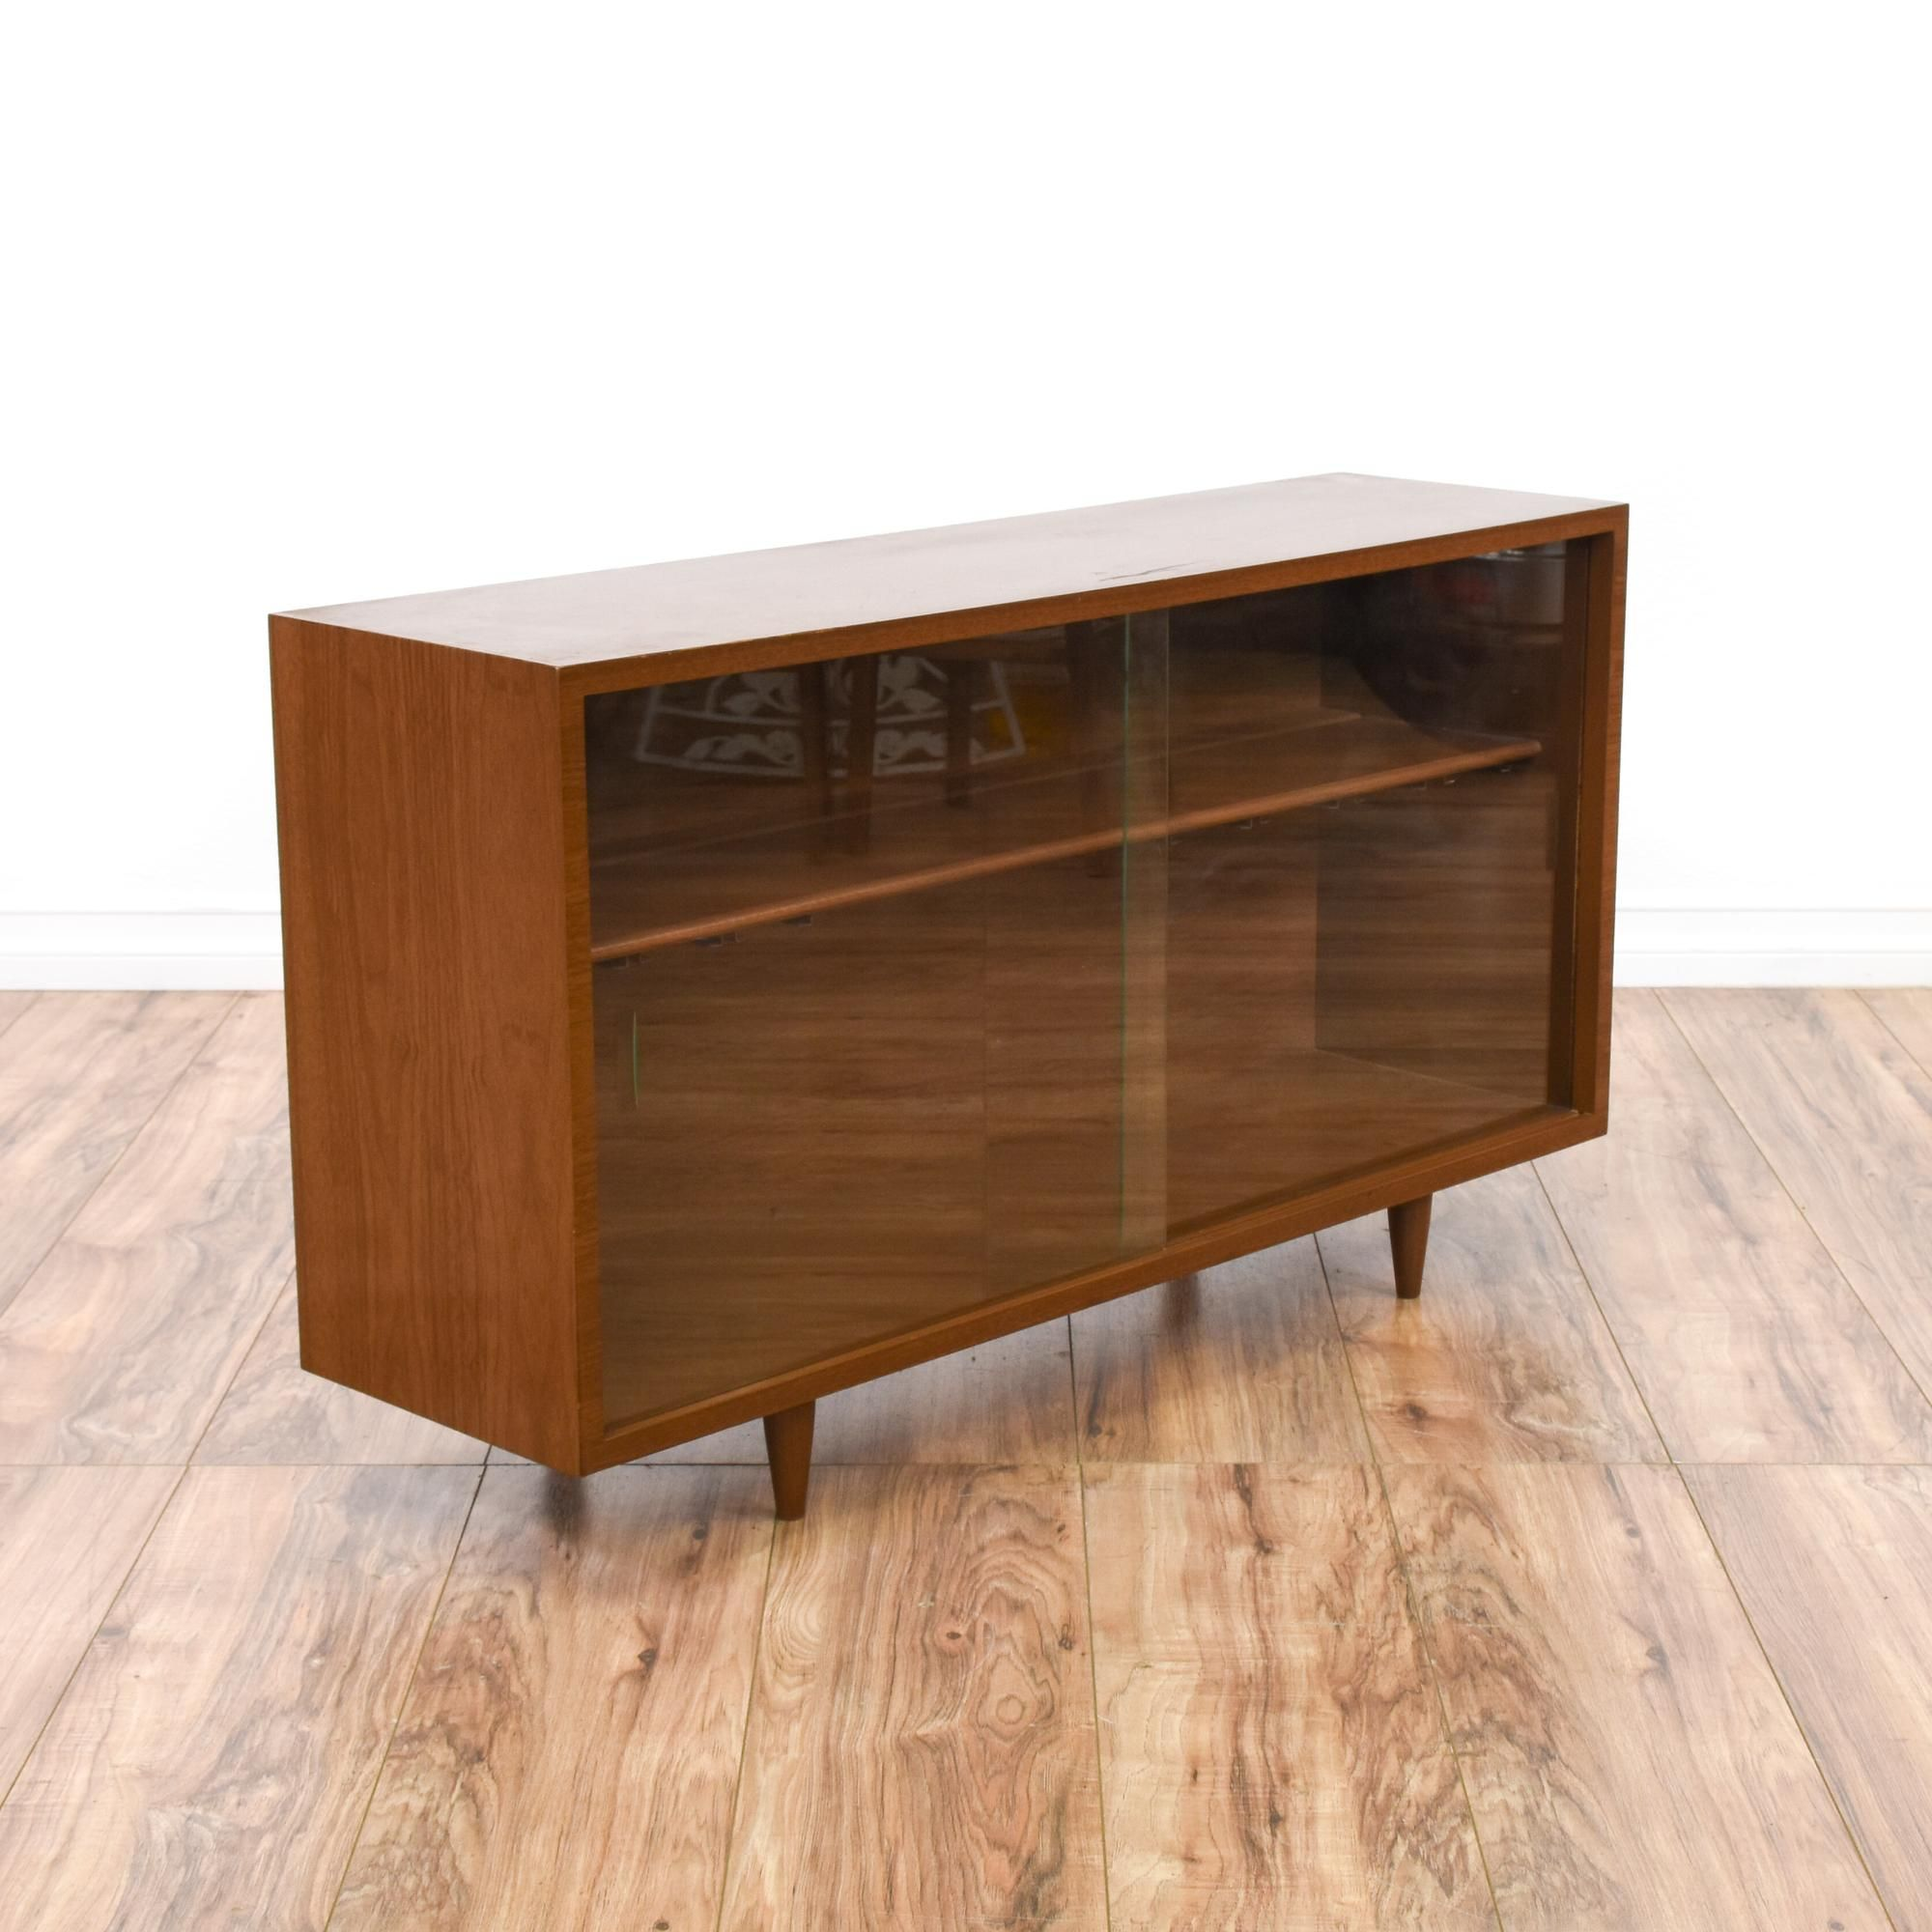 Wine Cabinets This Low Mid Century Modern Display Case Is Featured In A Solid Wood With Glossy